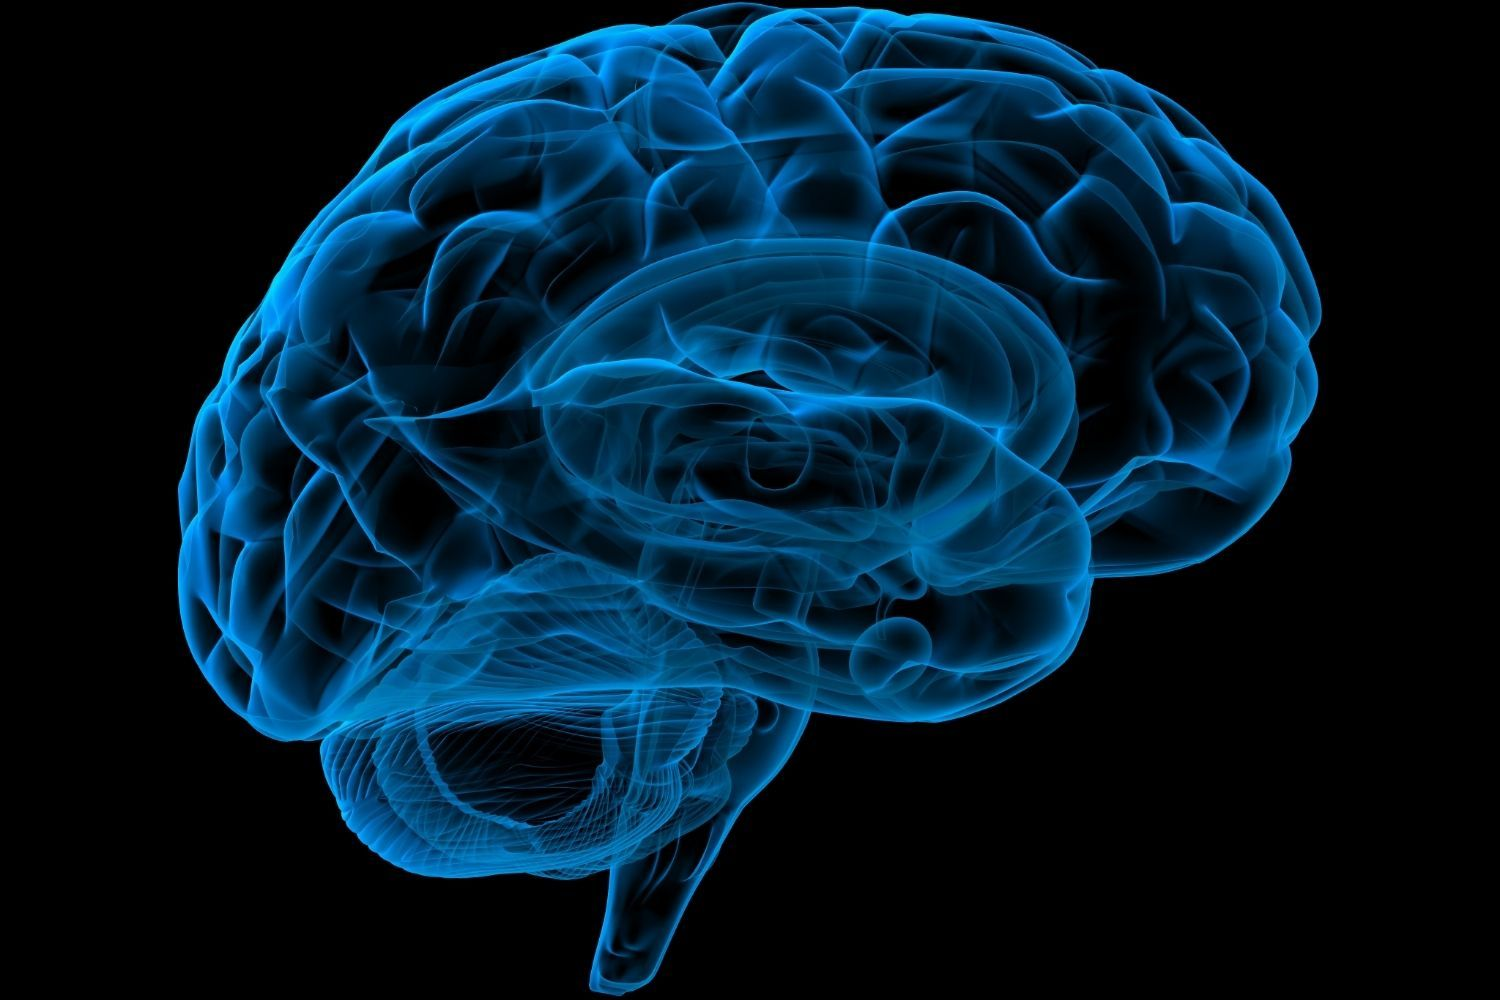 Brain Fitness: Train Faster Thinking, Better Memory And Focus